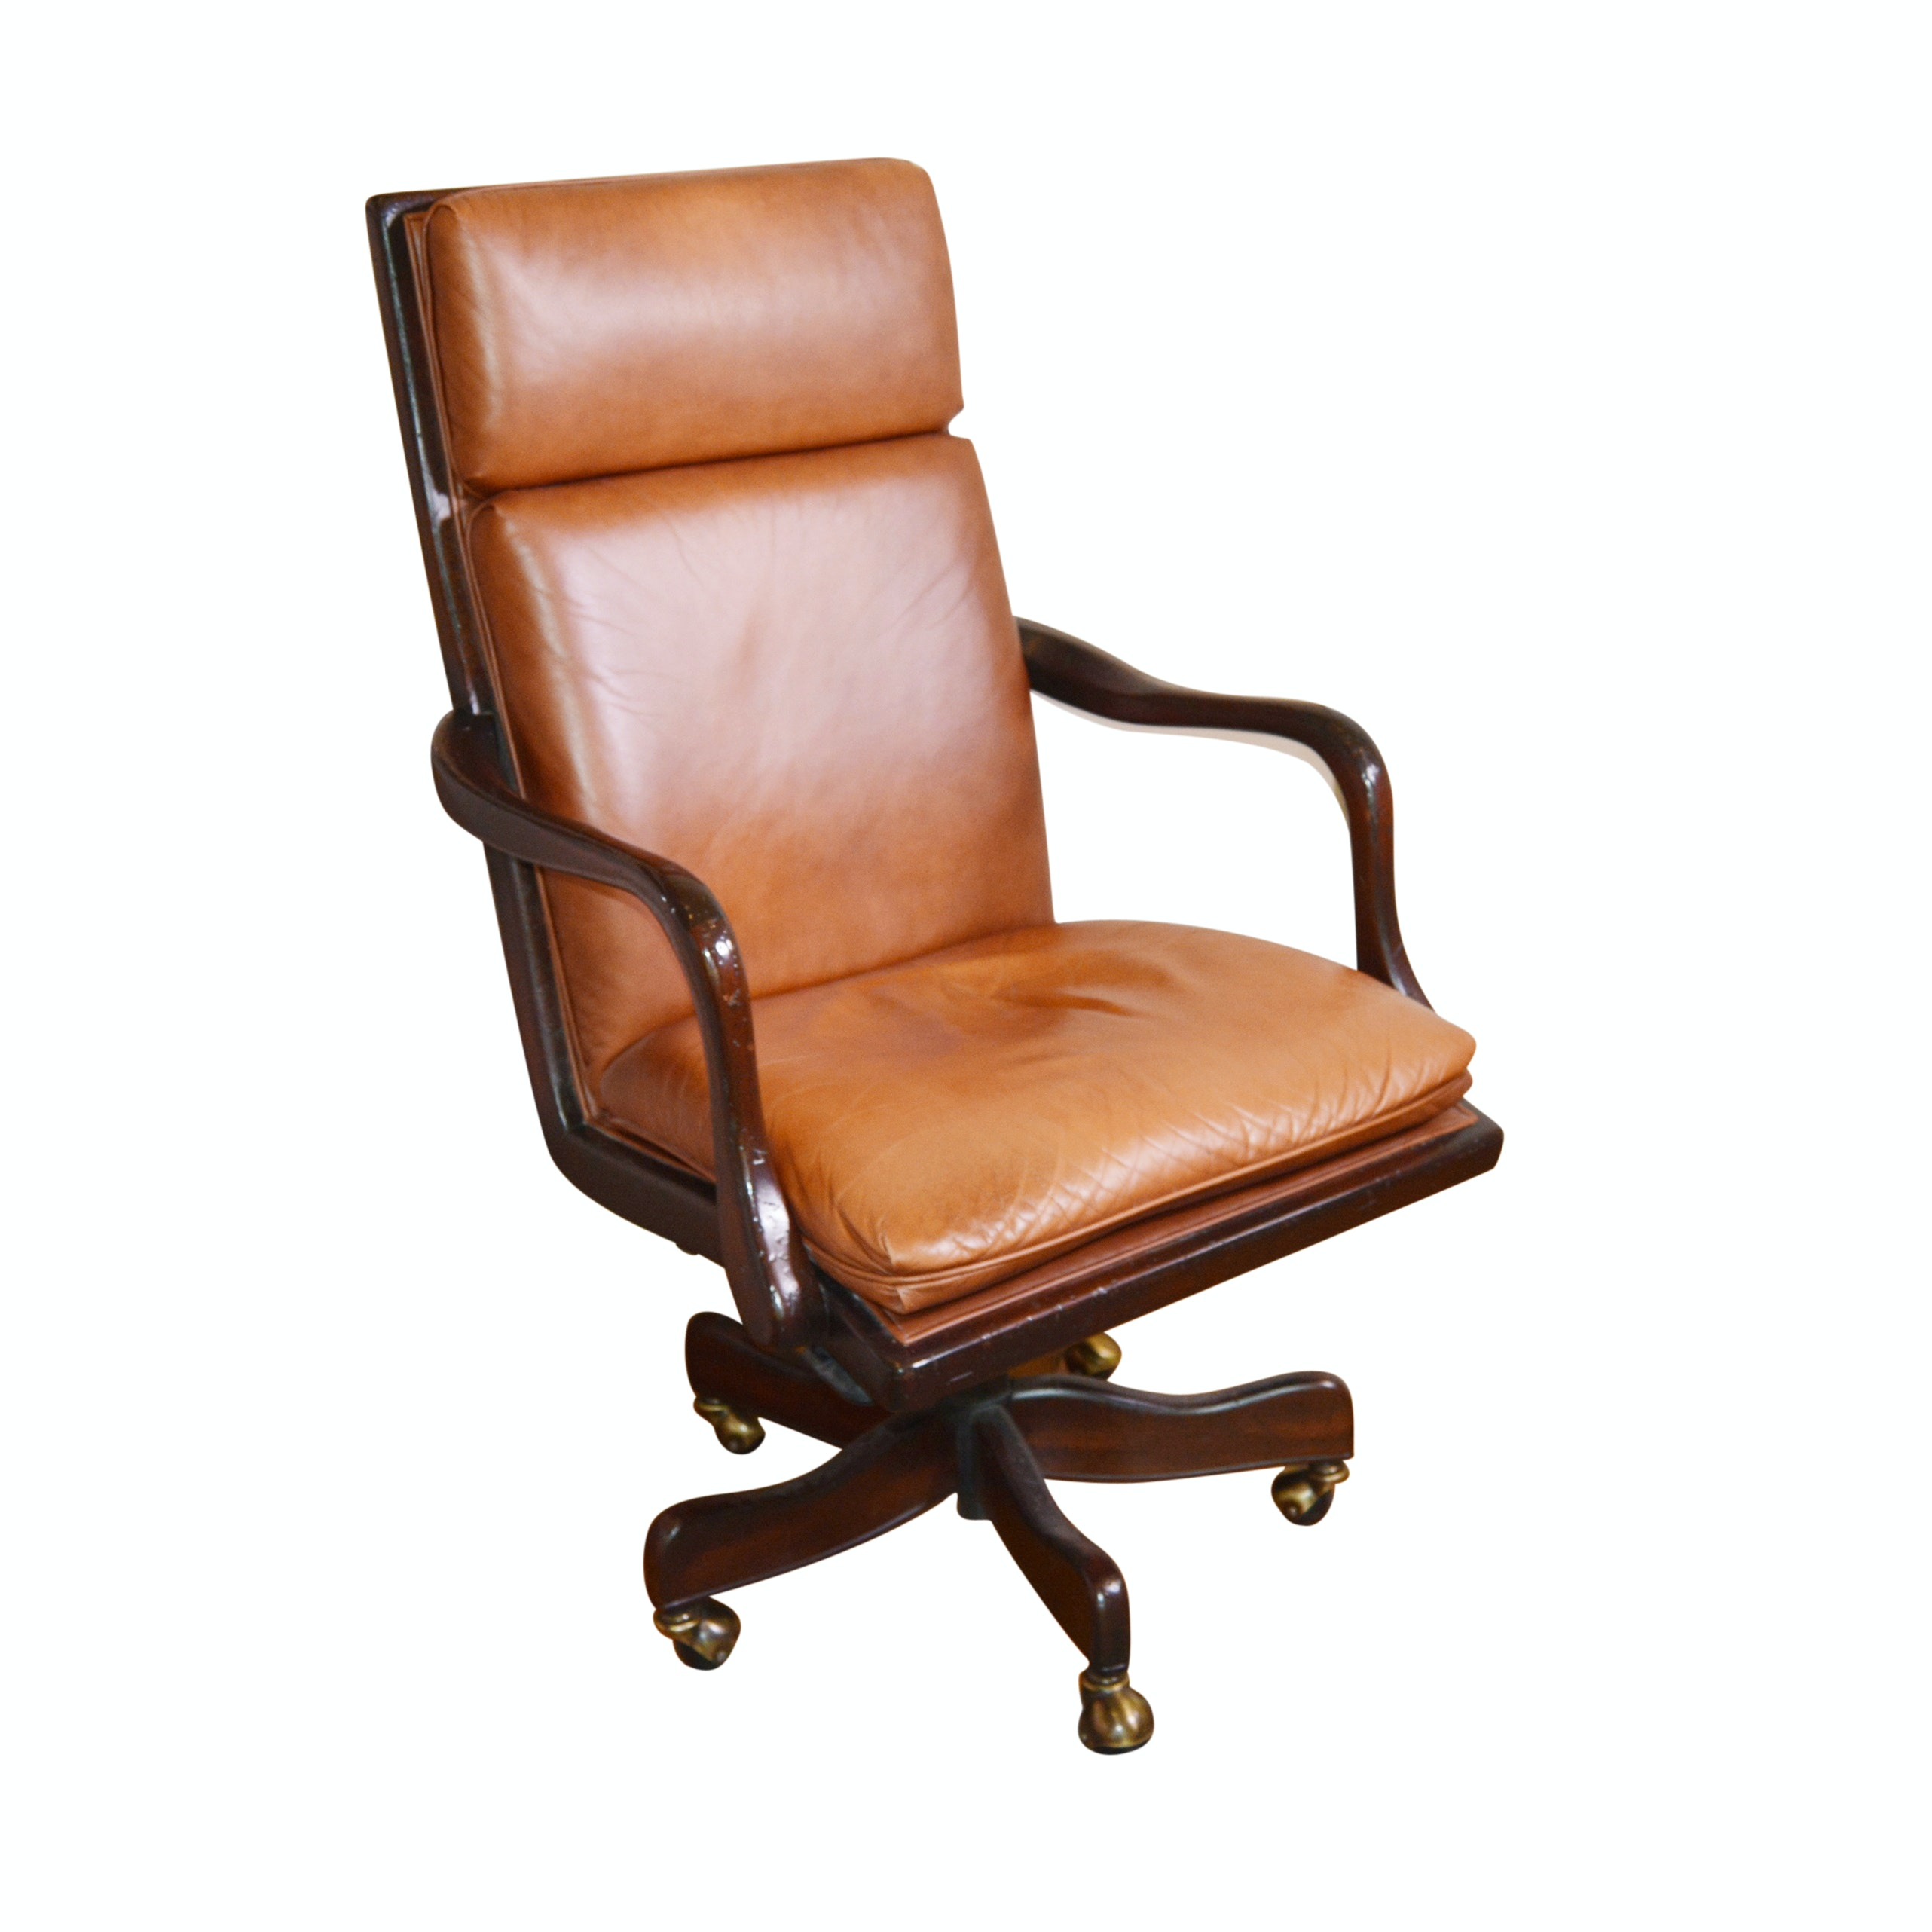 Hancock & Moore Leather Swivel Executive Chair